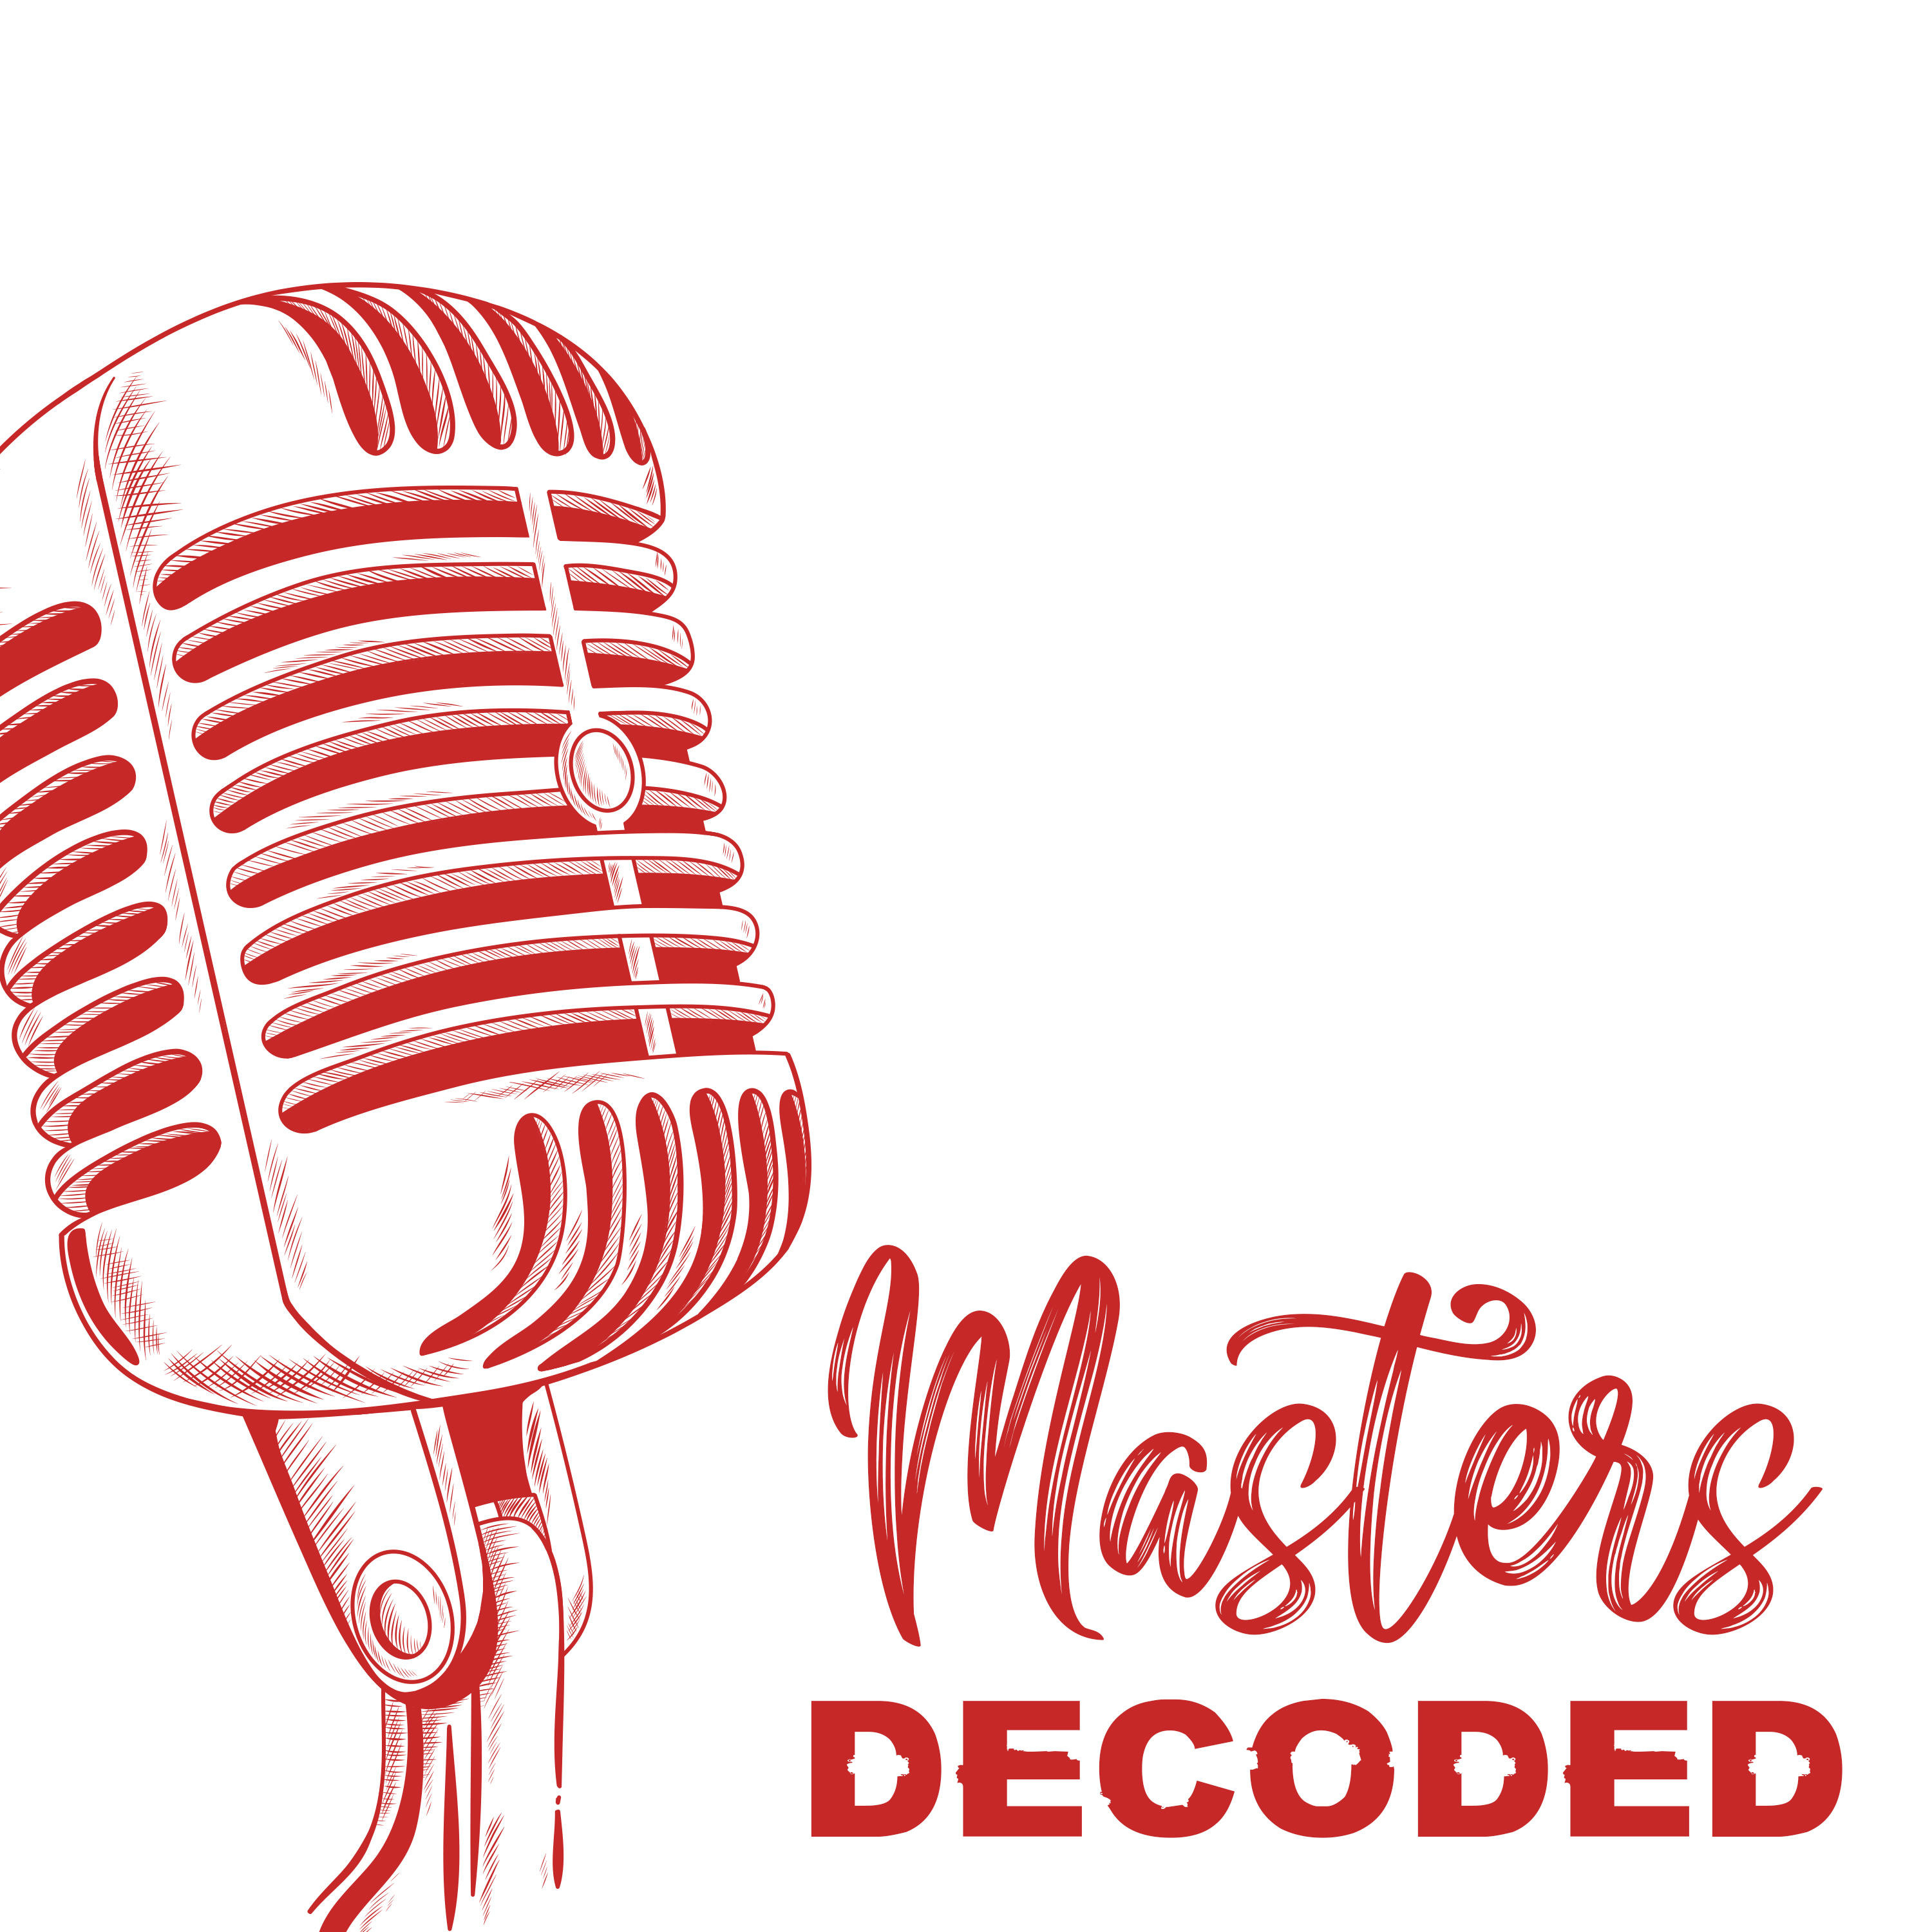 """Fresh update on """"engineer"""" discussed on Masters Decoded"""